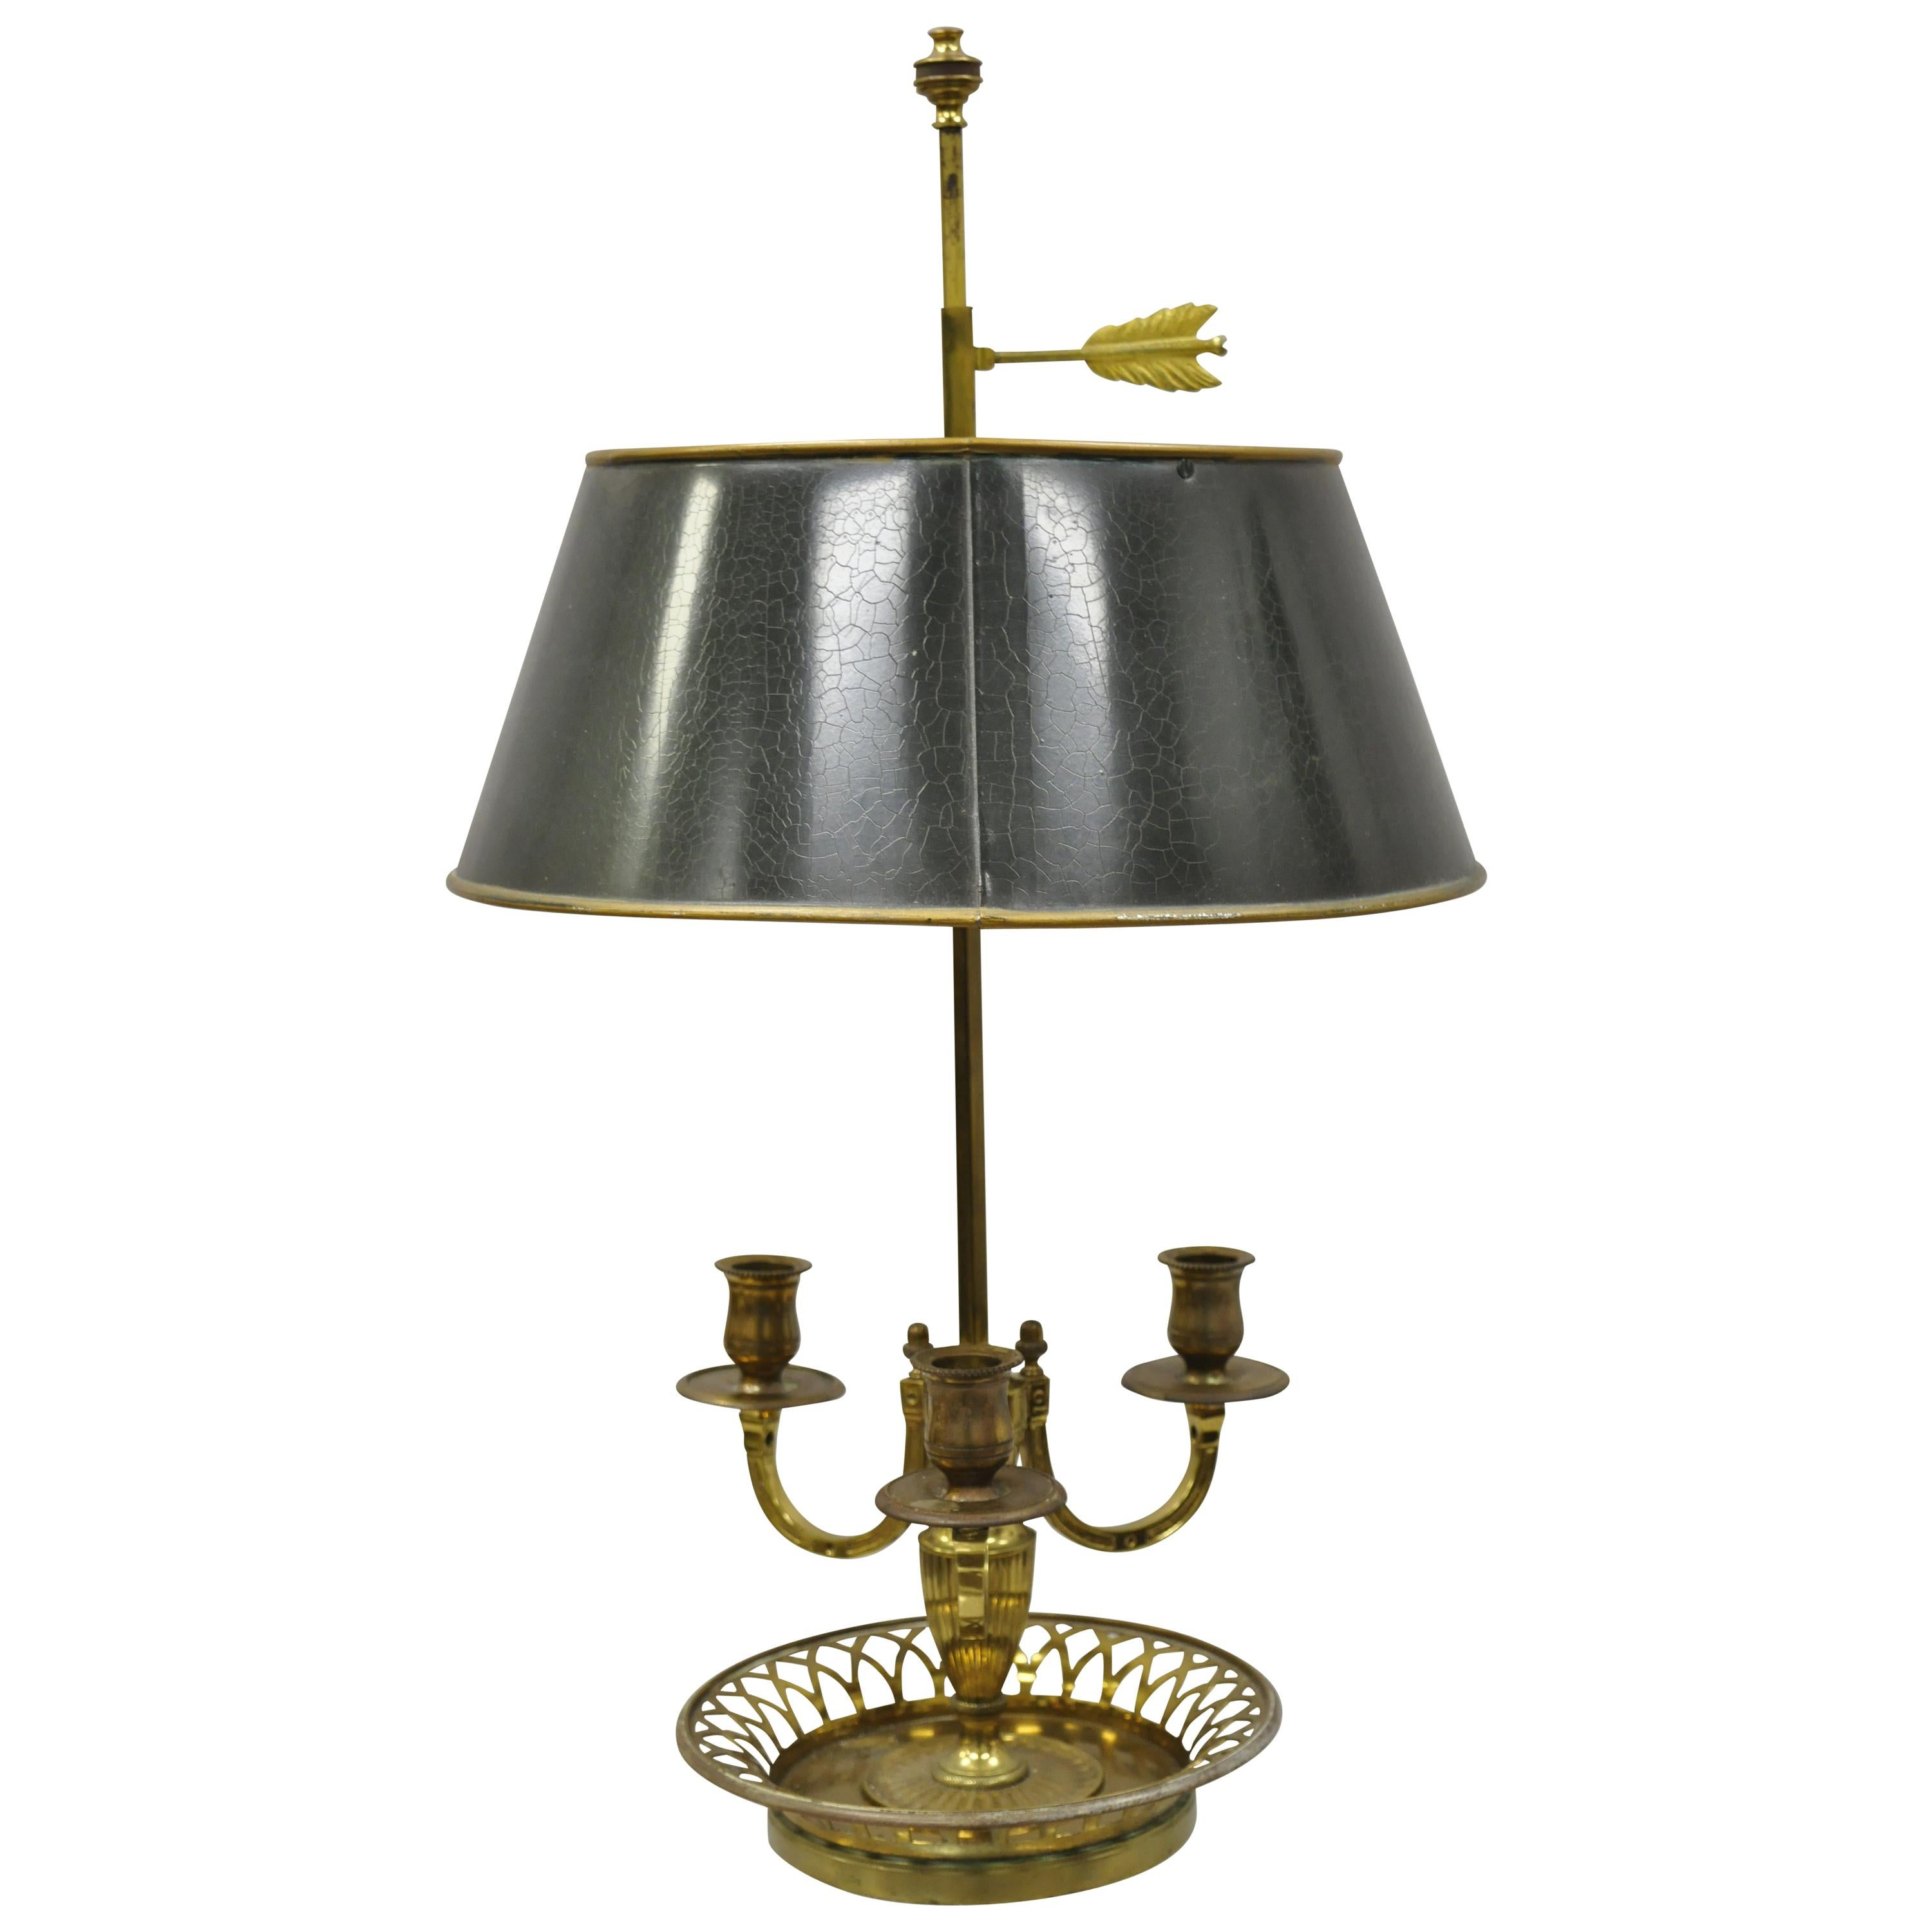 French Empire Green Gilt Tole Lamps